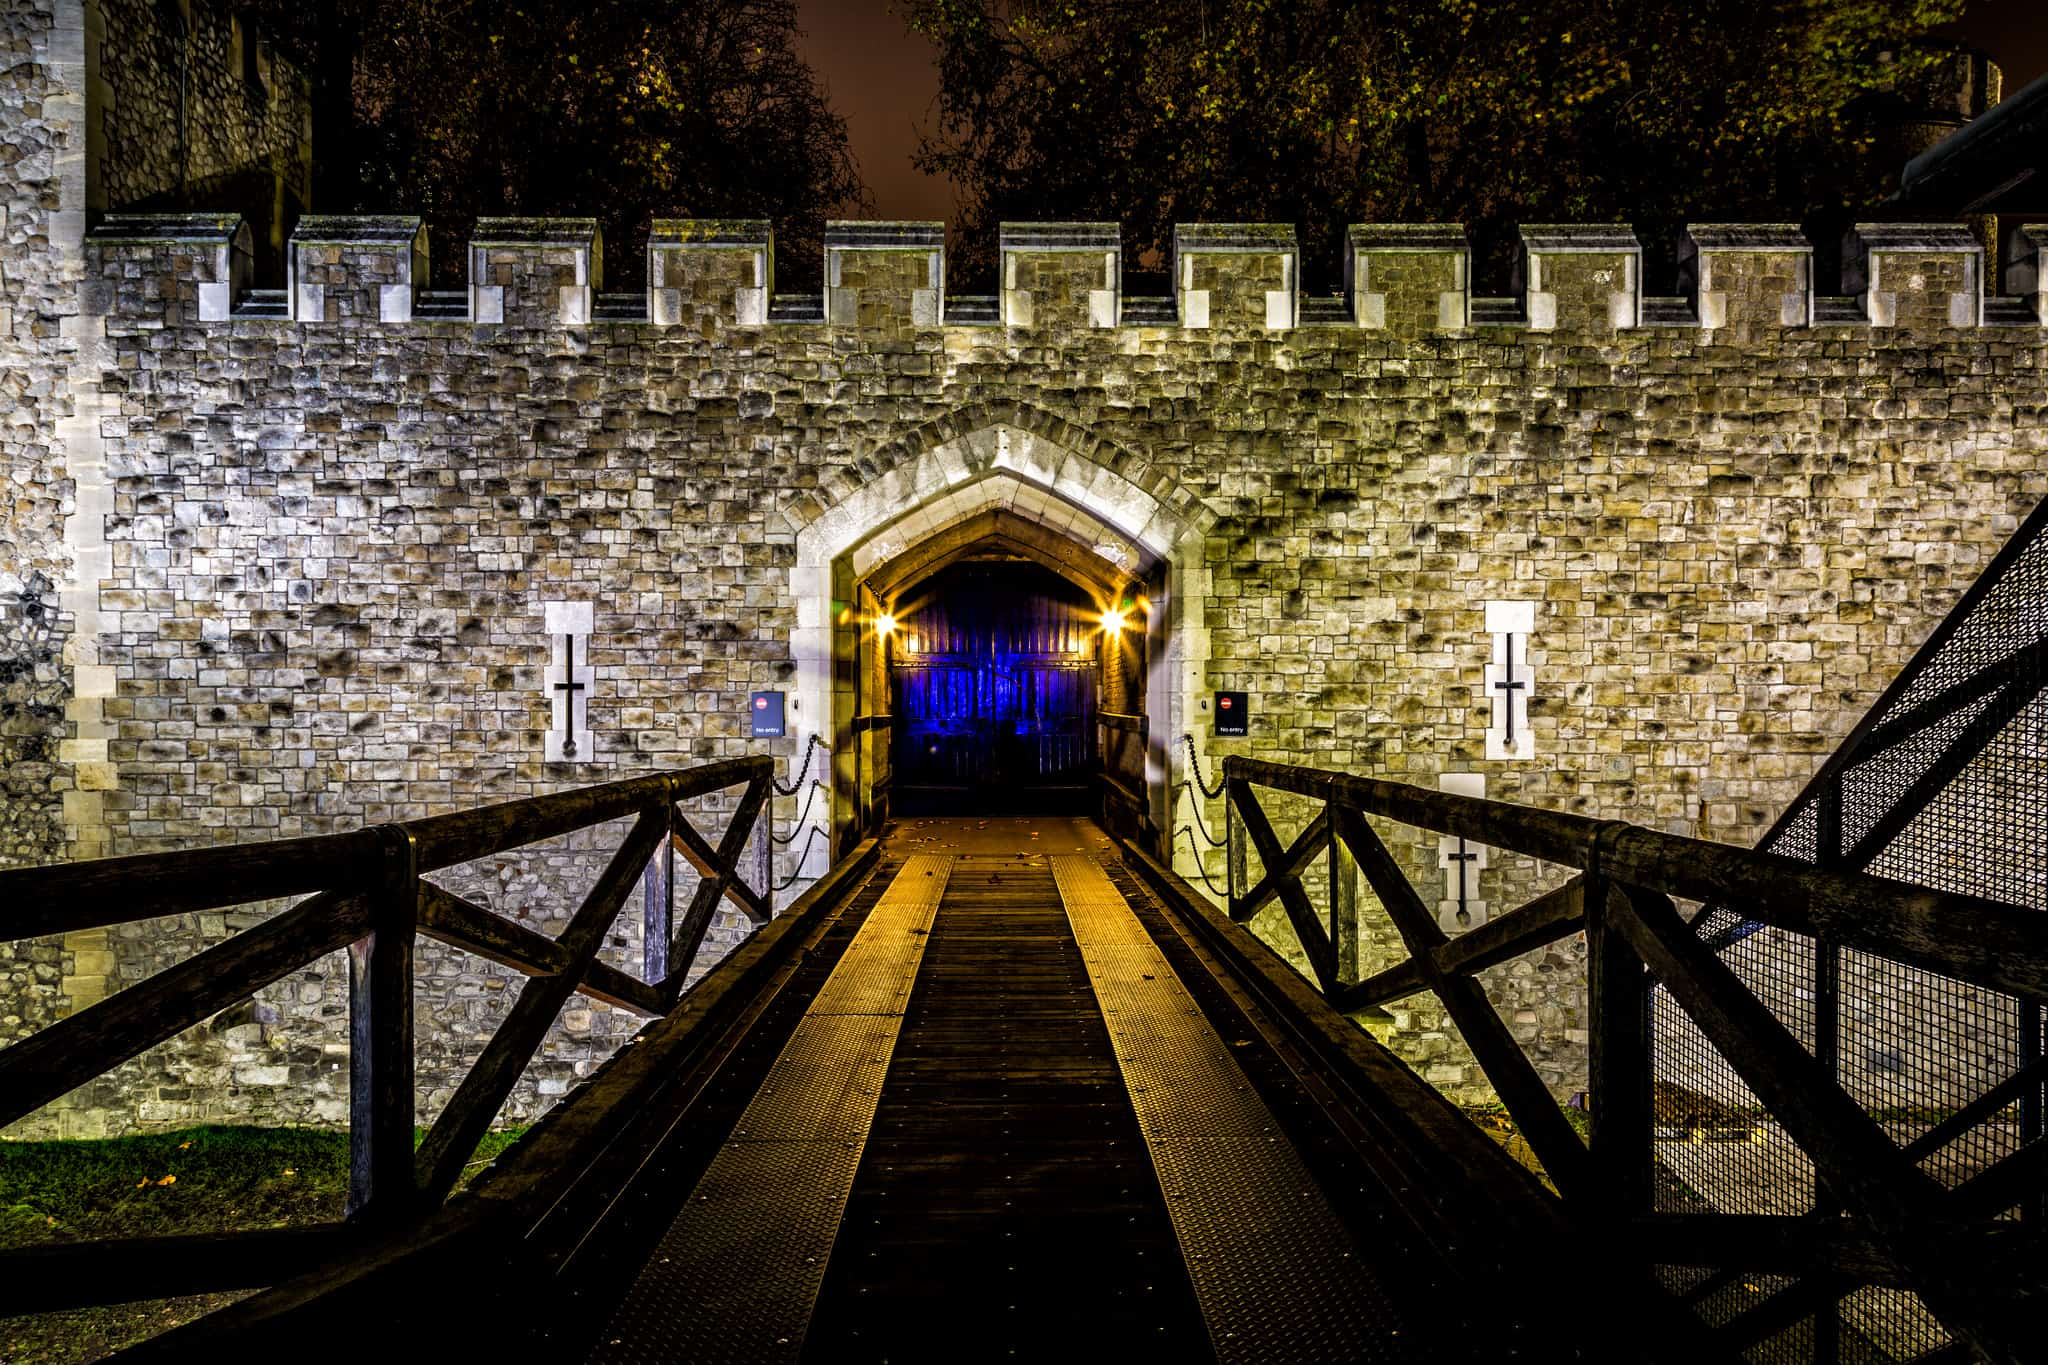 The princes of tower of London